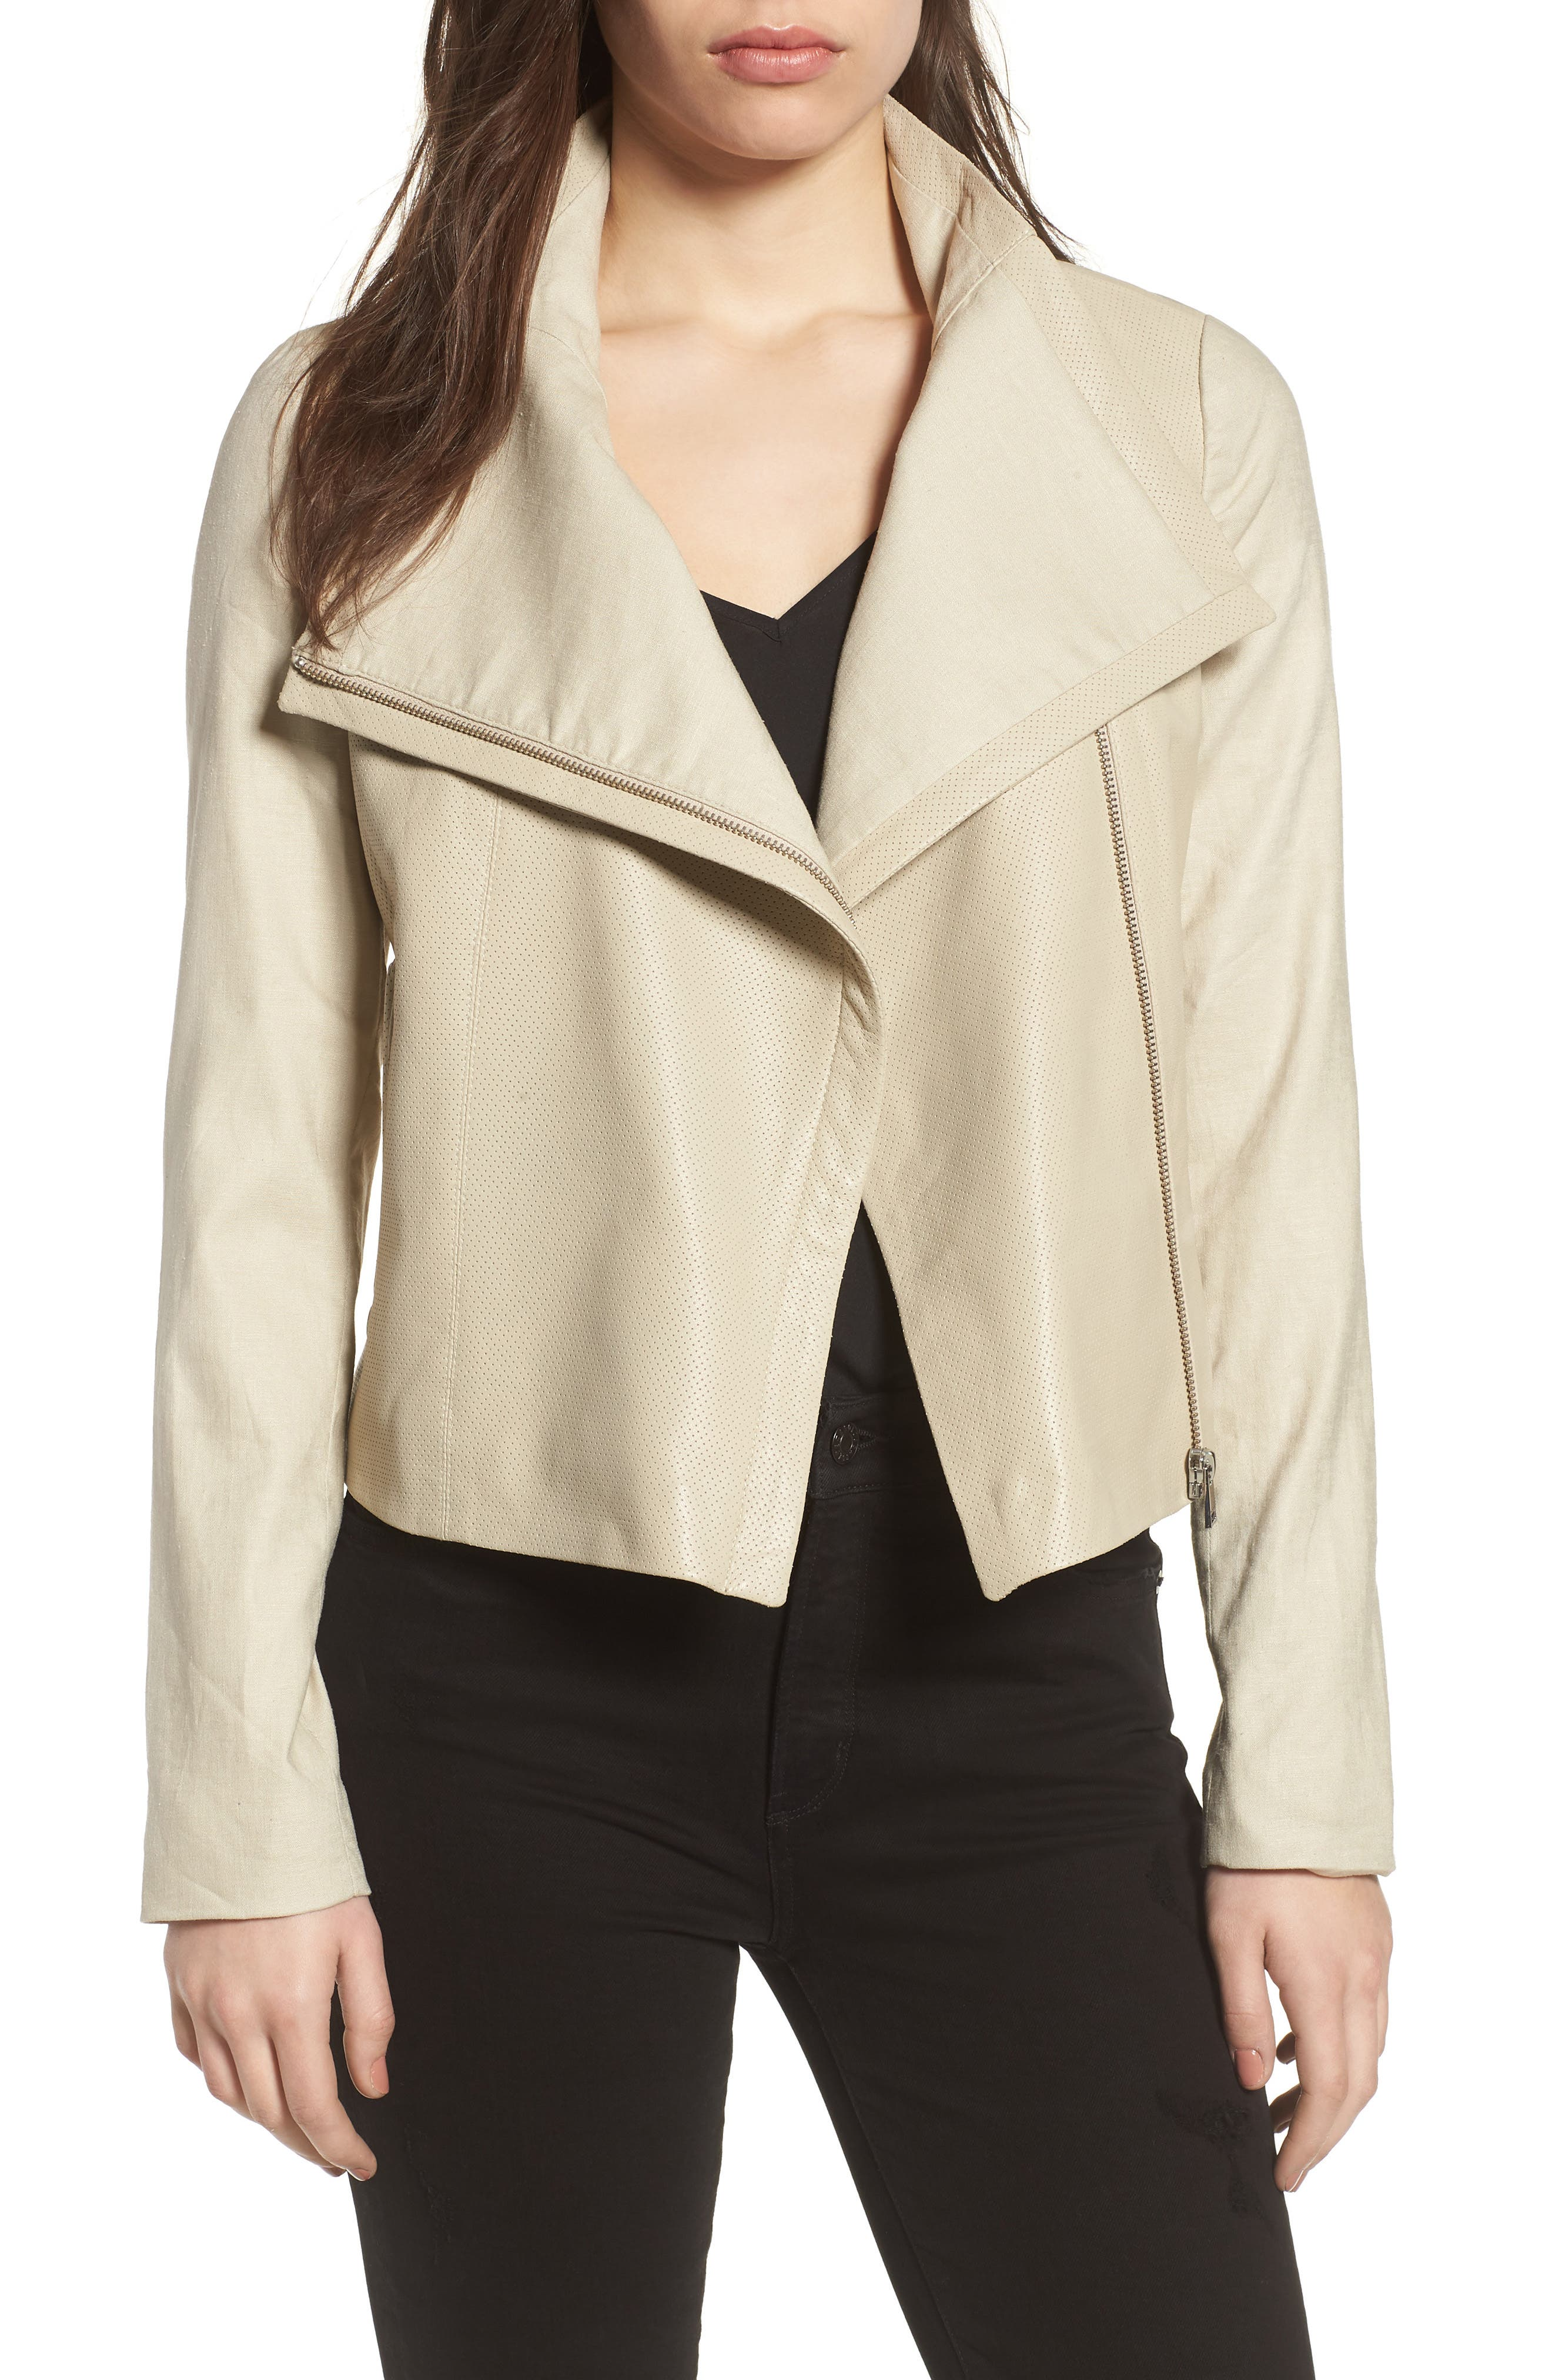 LARMARQUE Leather & Linen Mix Jacket